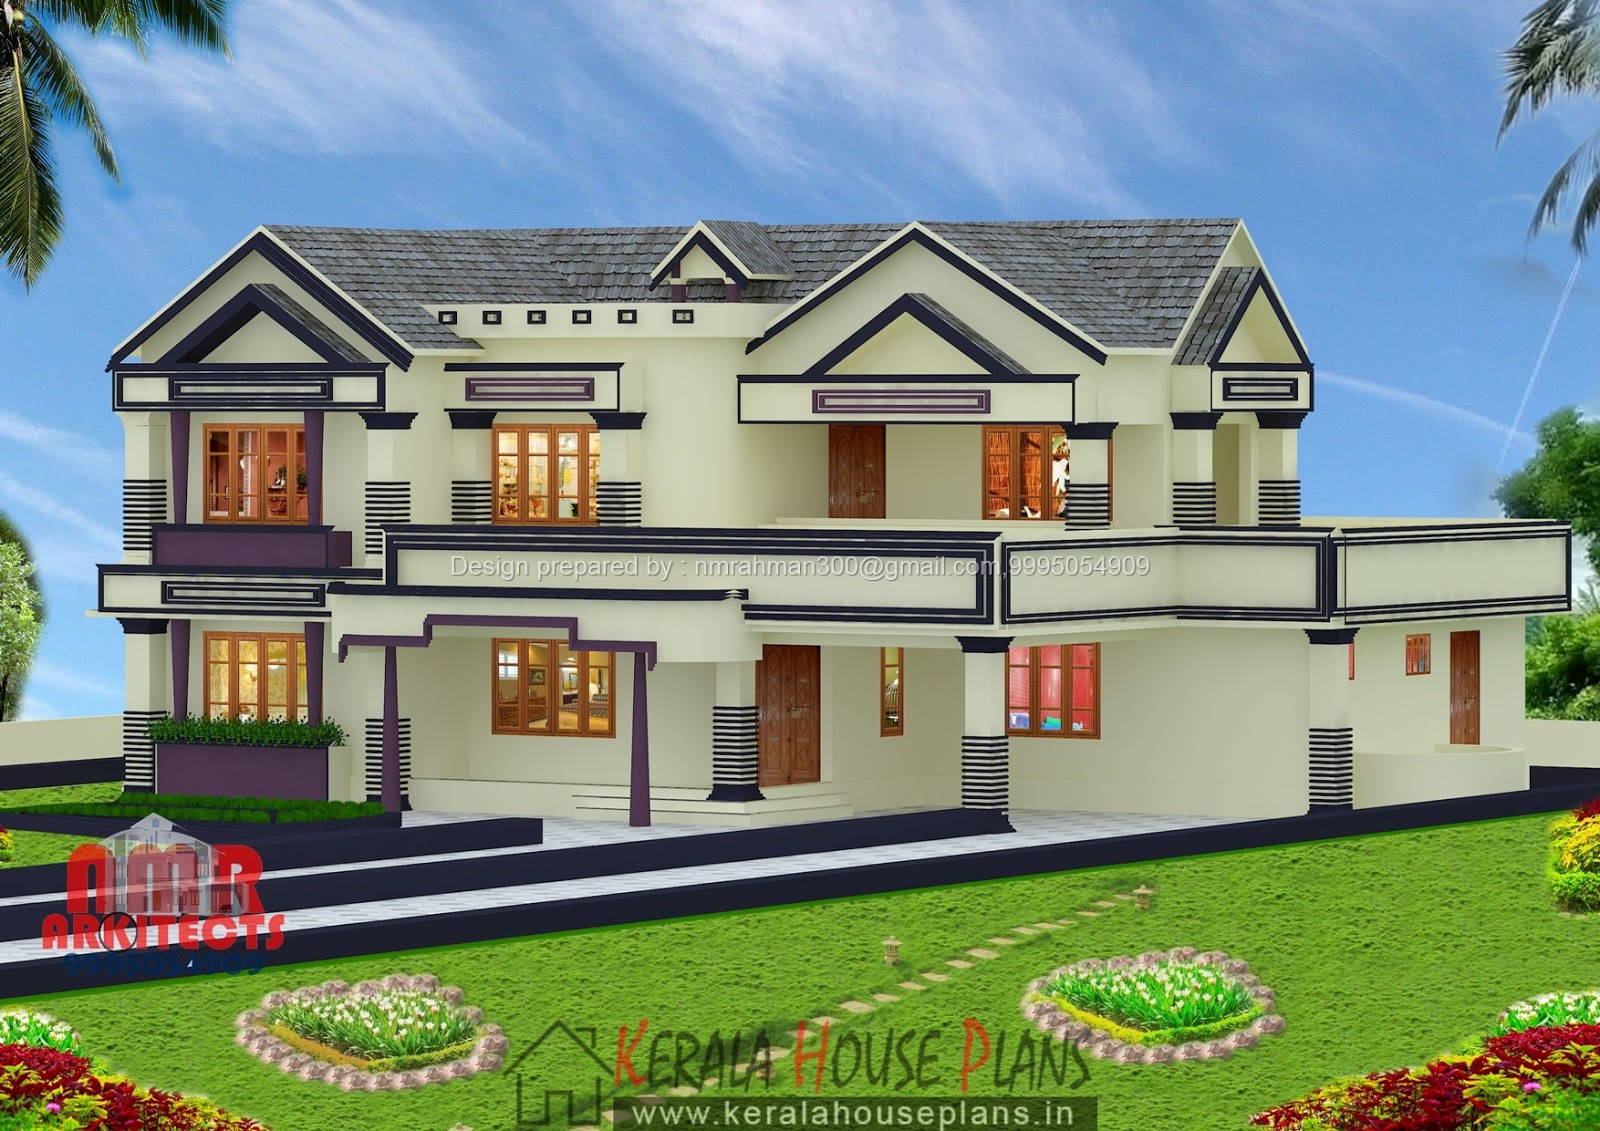 Kerala house plans above 3000 sq ft kerala house plans for 3000 sq ft house plans kerala style